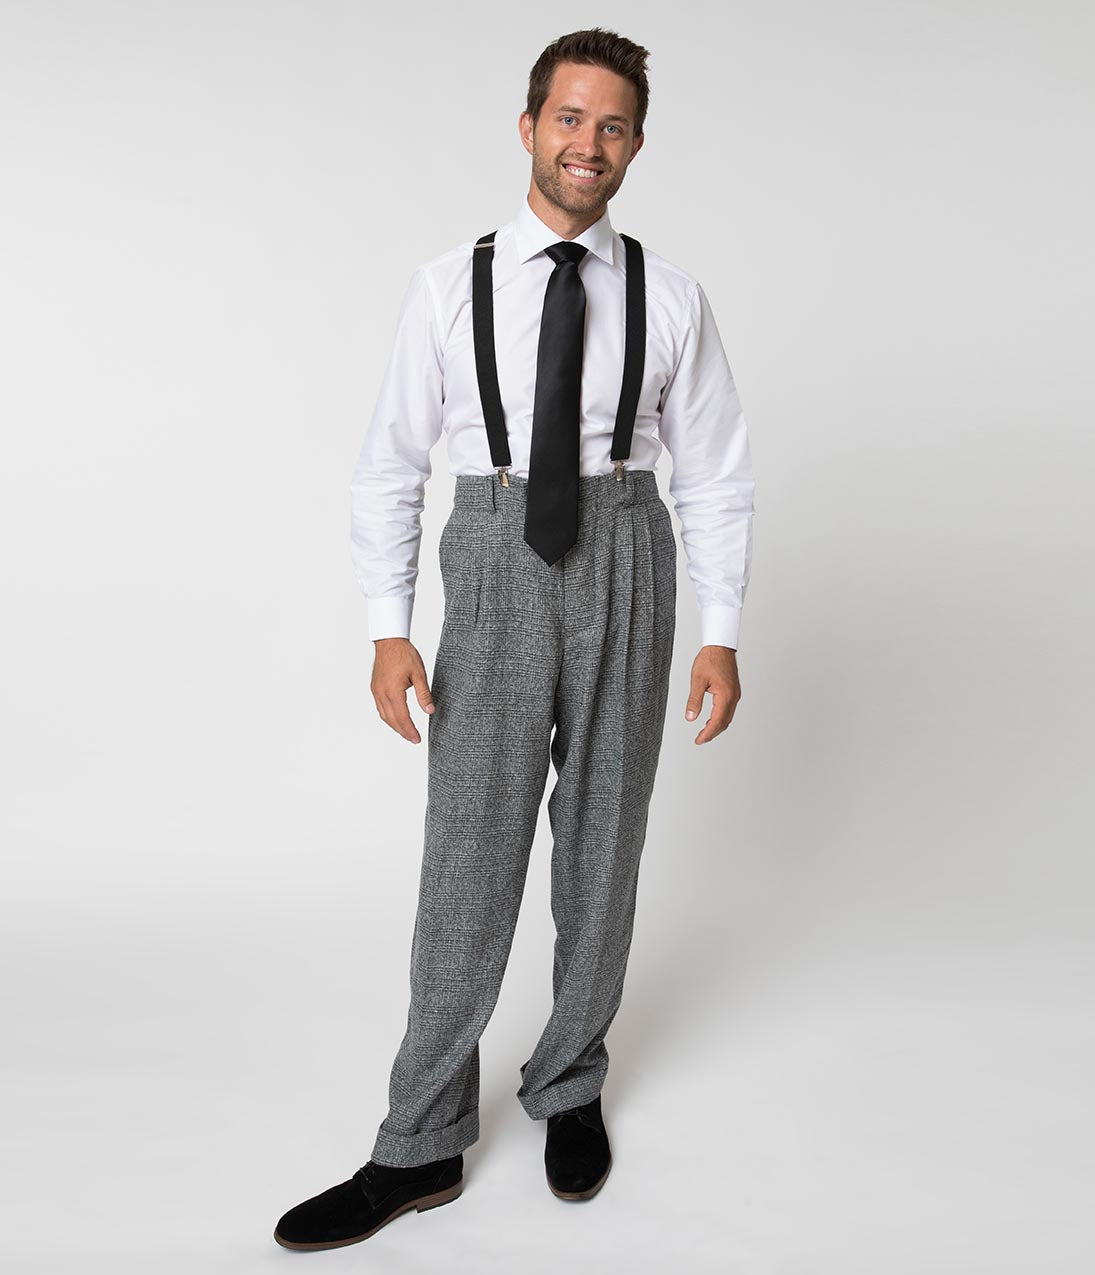 1940s Trousers, Mens Wide Leg Pants Unique Vintage 1930S Style Grey Checkered Woven Men Pants $88.00 AT vintagedancer.com